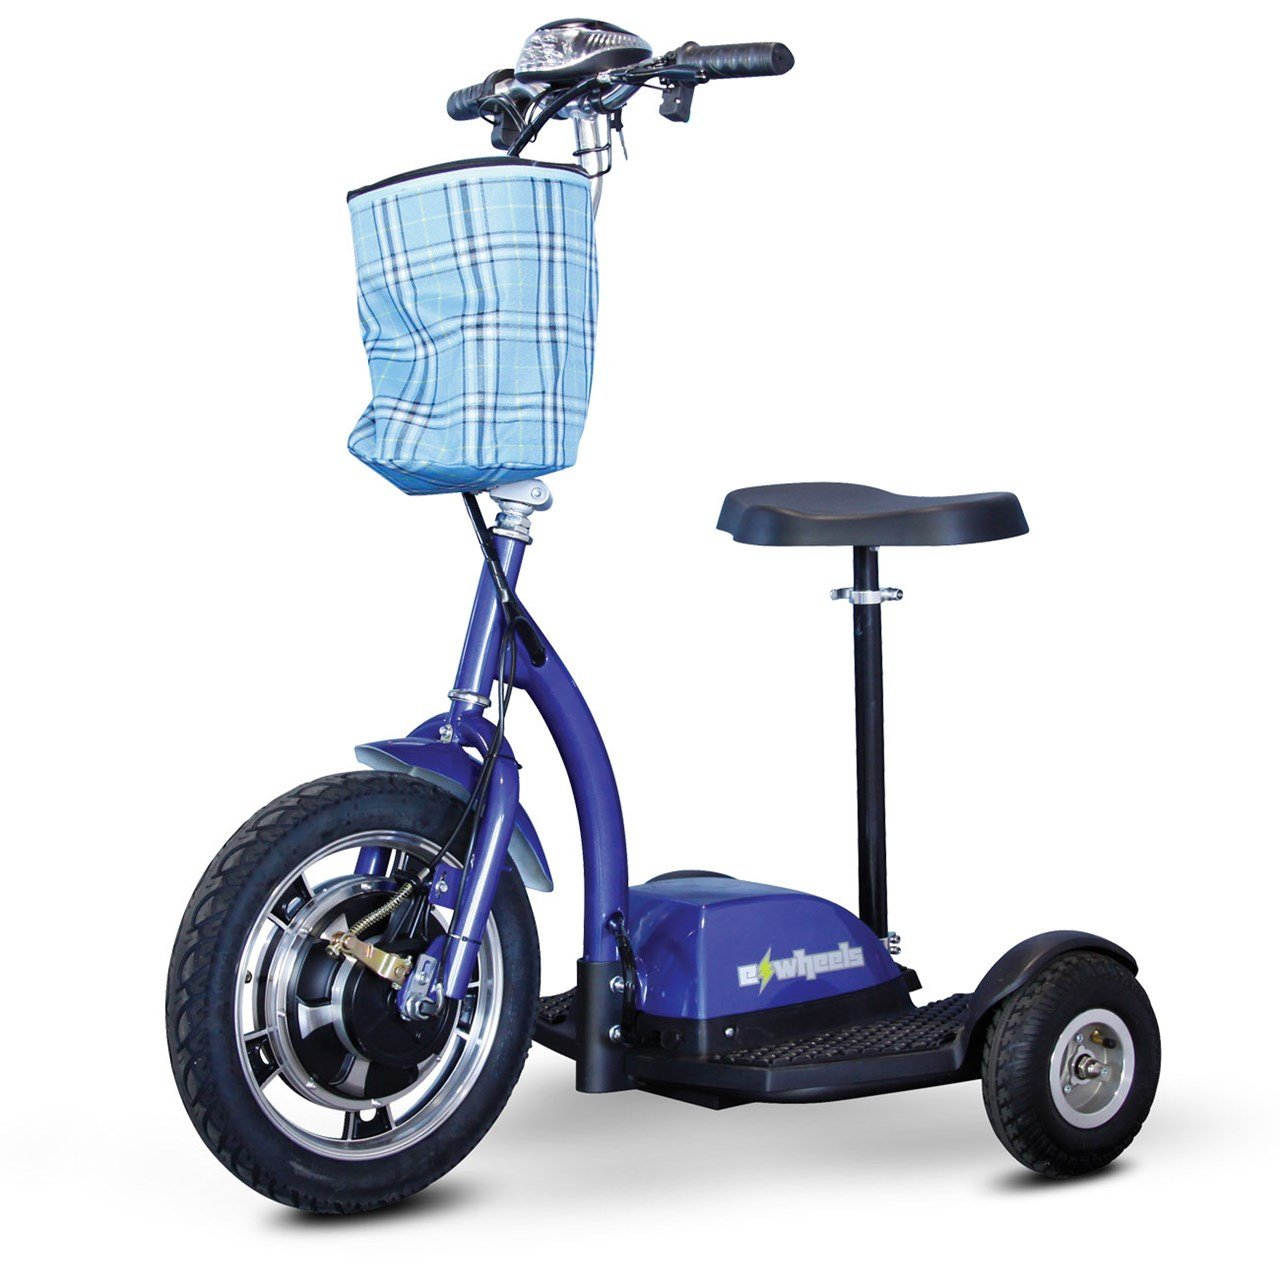 Amazon.com: Soporte y ride Scooter Color: Azul: Health ...